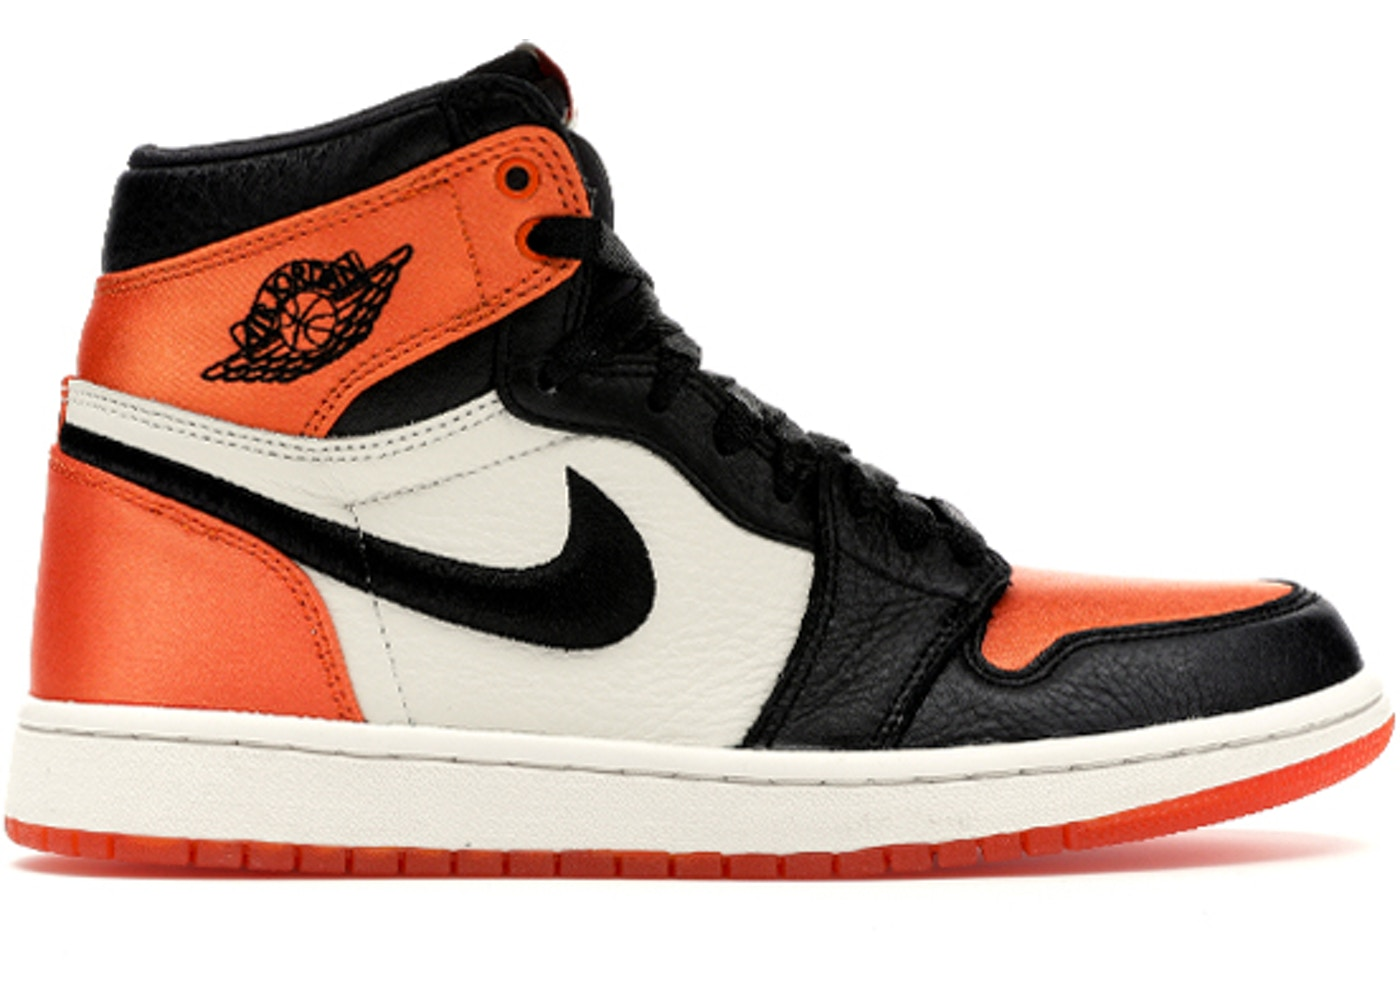 wholesale dealer a5a15 874af Jordan 1 Retro High Satin Shattered Backboard (W)